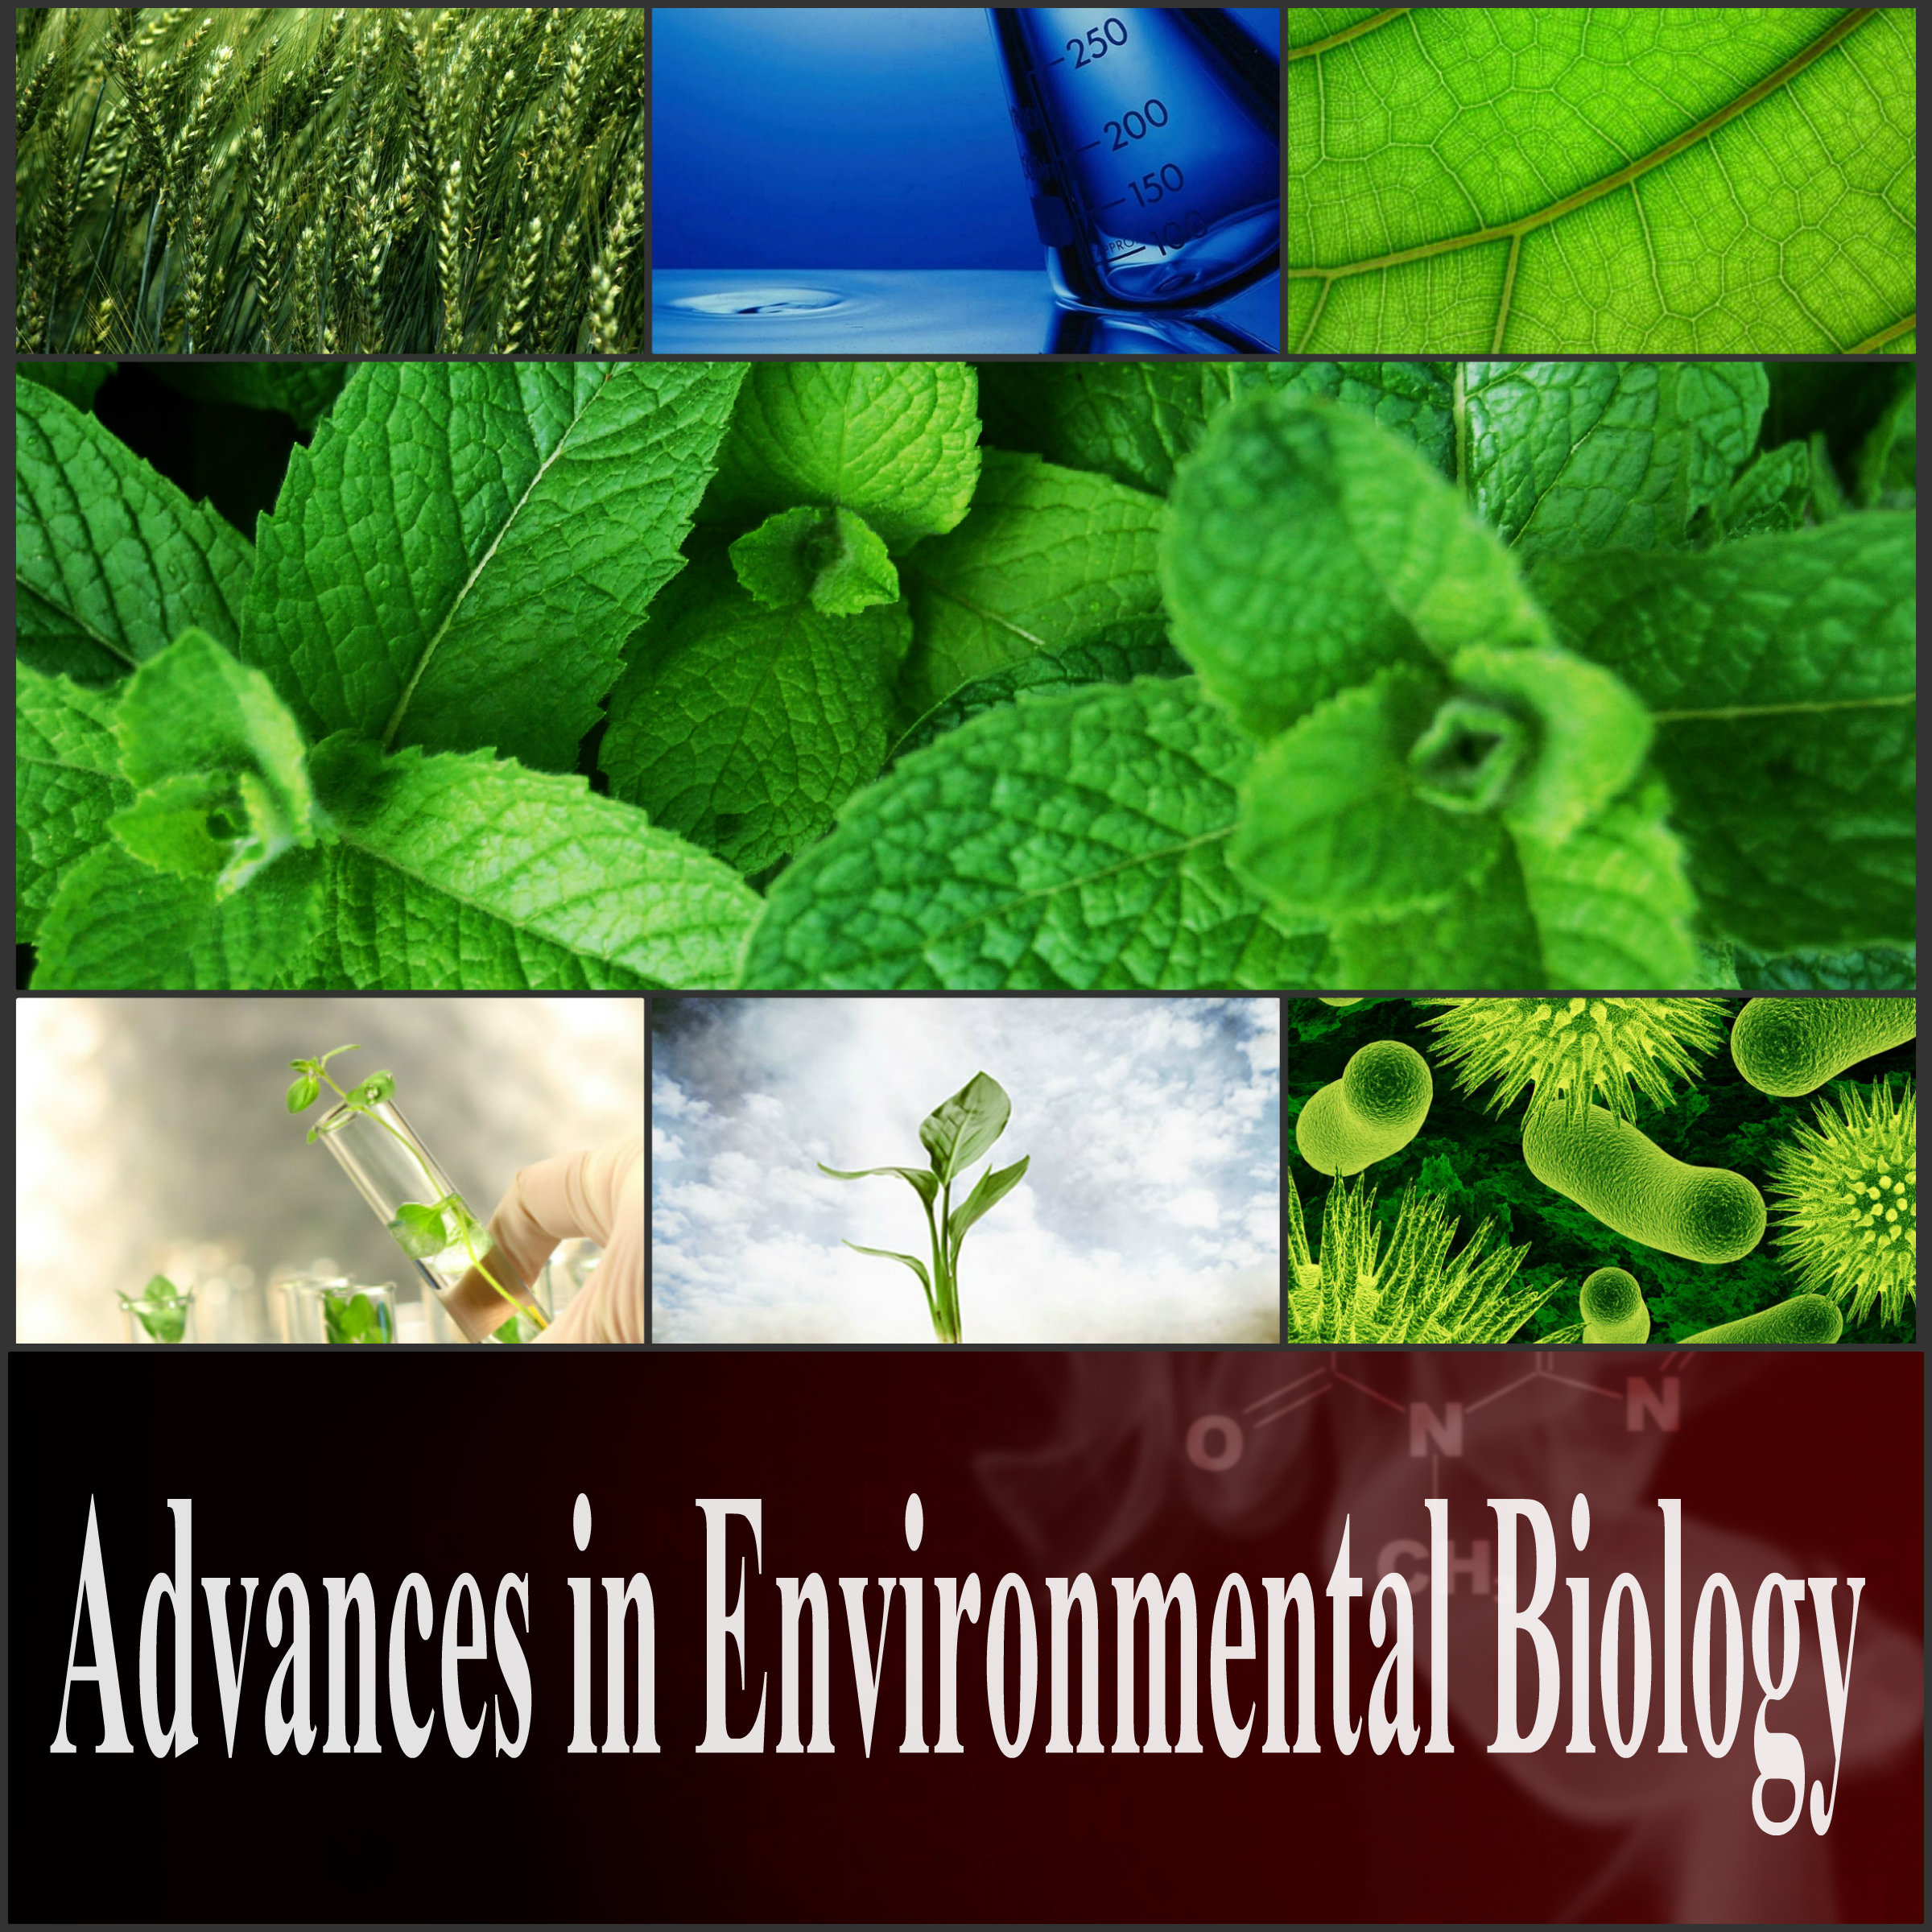 environmental biology essays The biosocial model was developed to encompass the influences and relationships the social environment, biology, and behavior have with one another, and how they interact to influence one another [tags: hormones sexual behavior health essays.